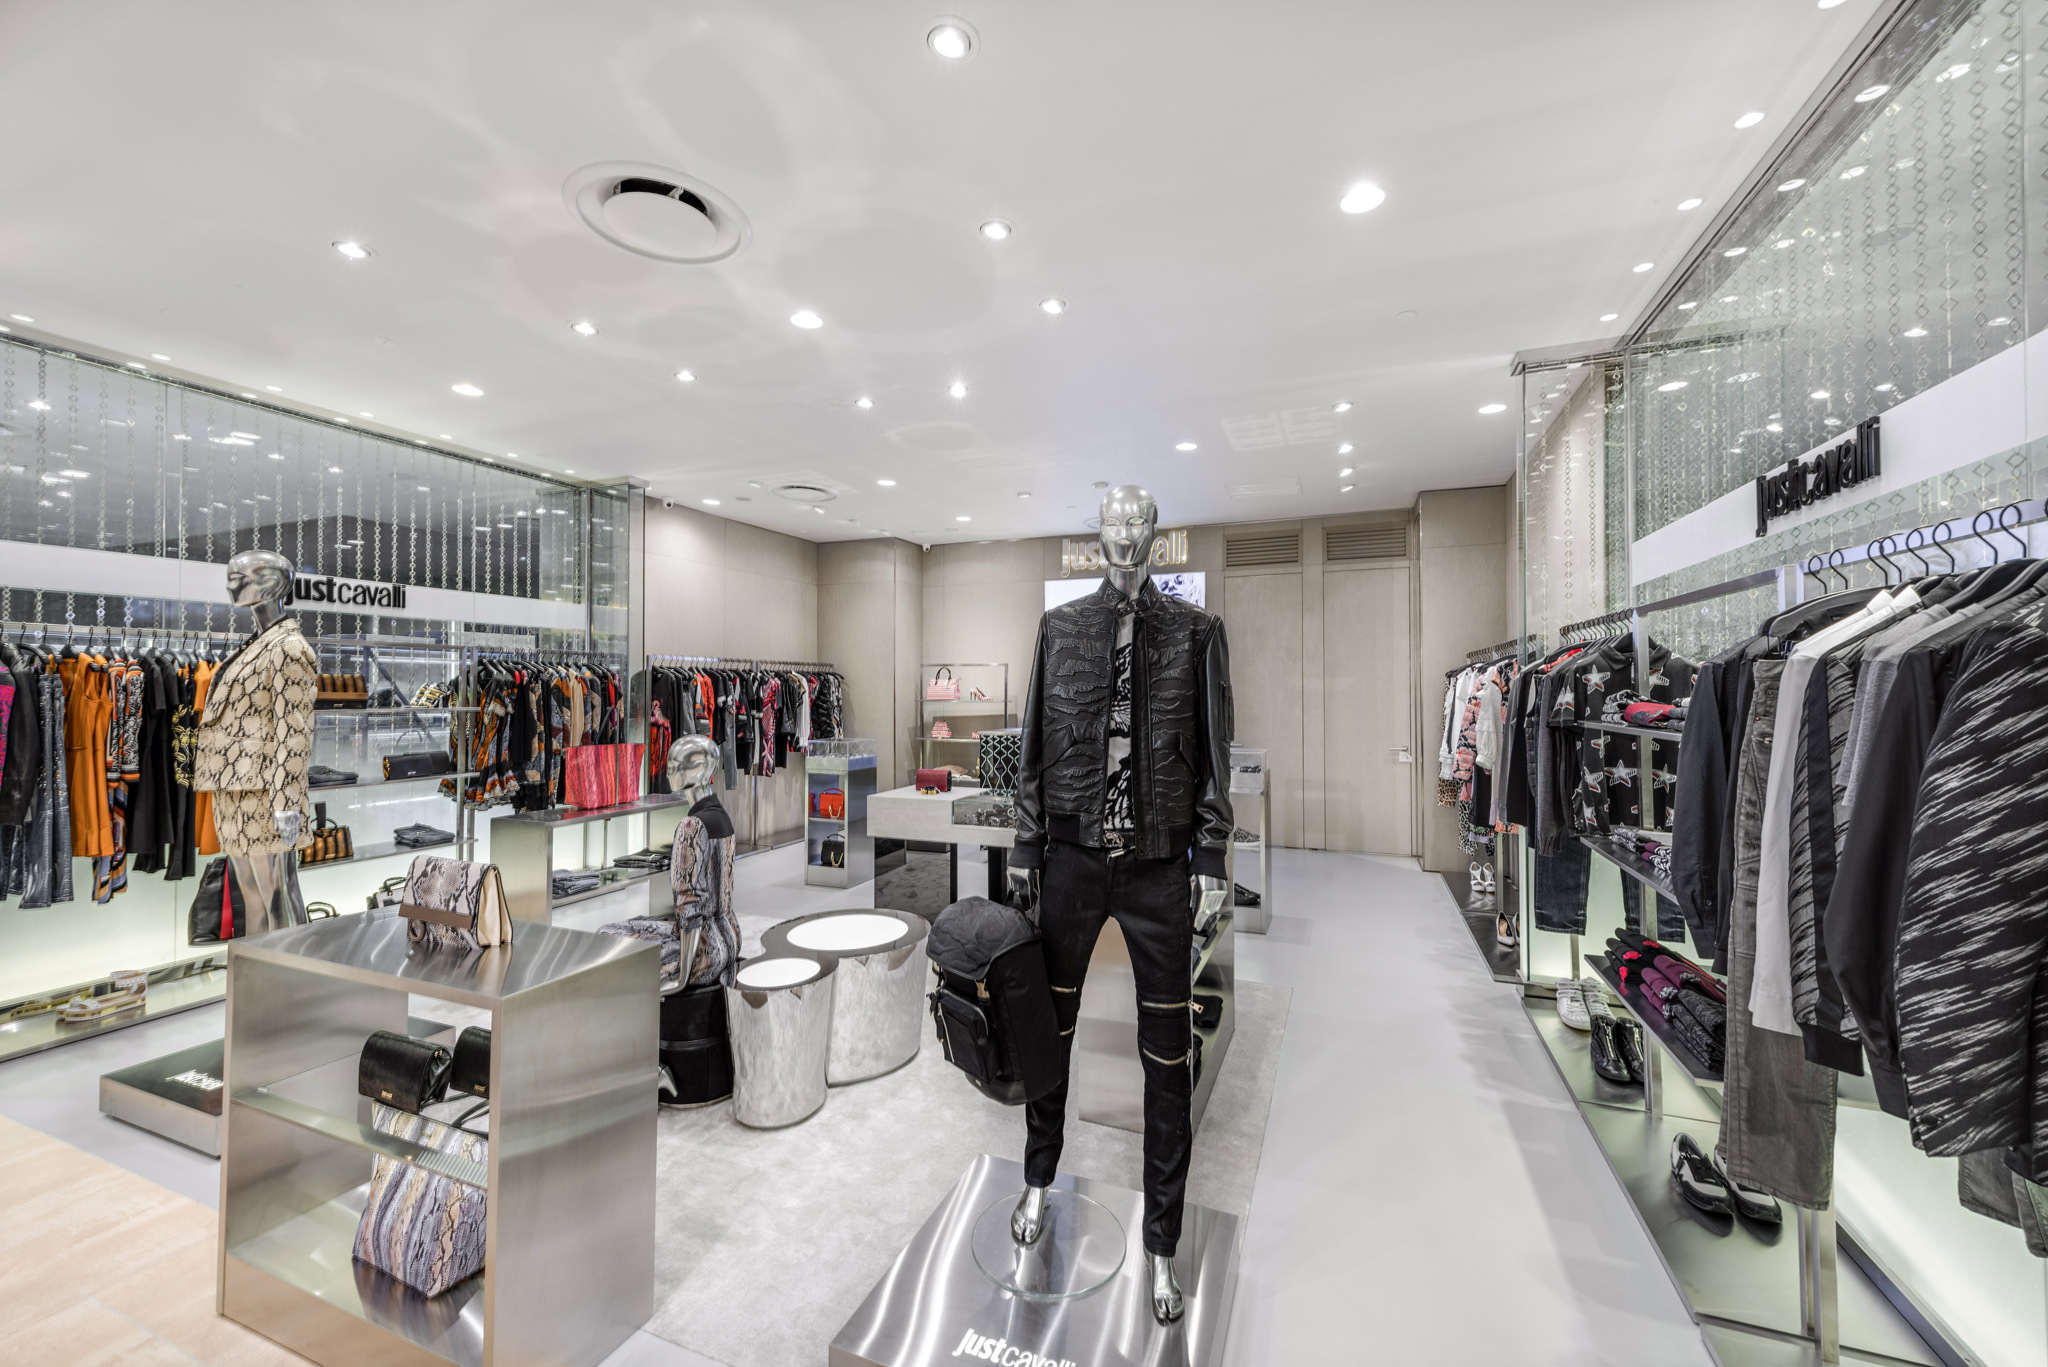 20160729 - Just Cavali - HCM - Commercial - Interior - Store - Retouch 0004.jpg